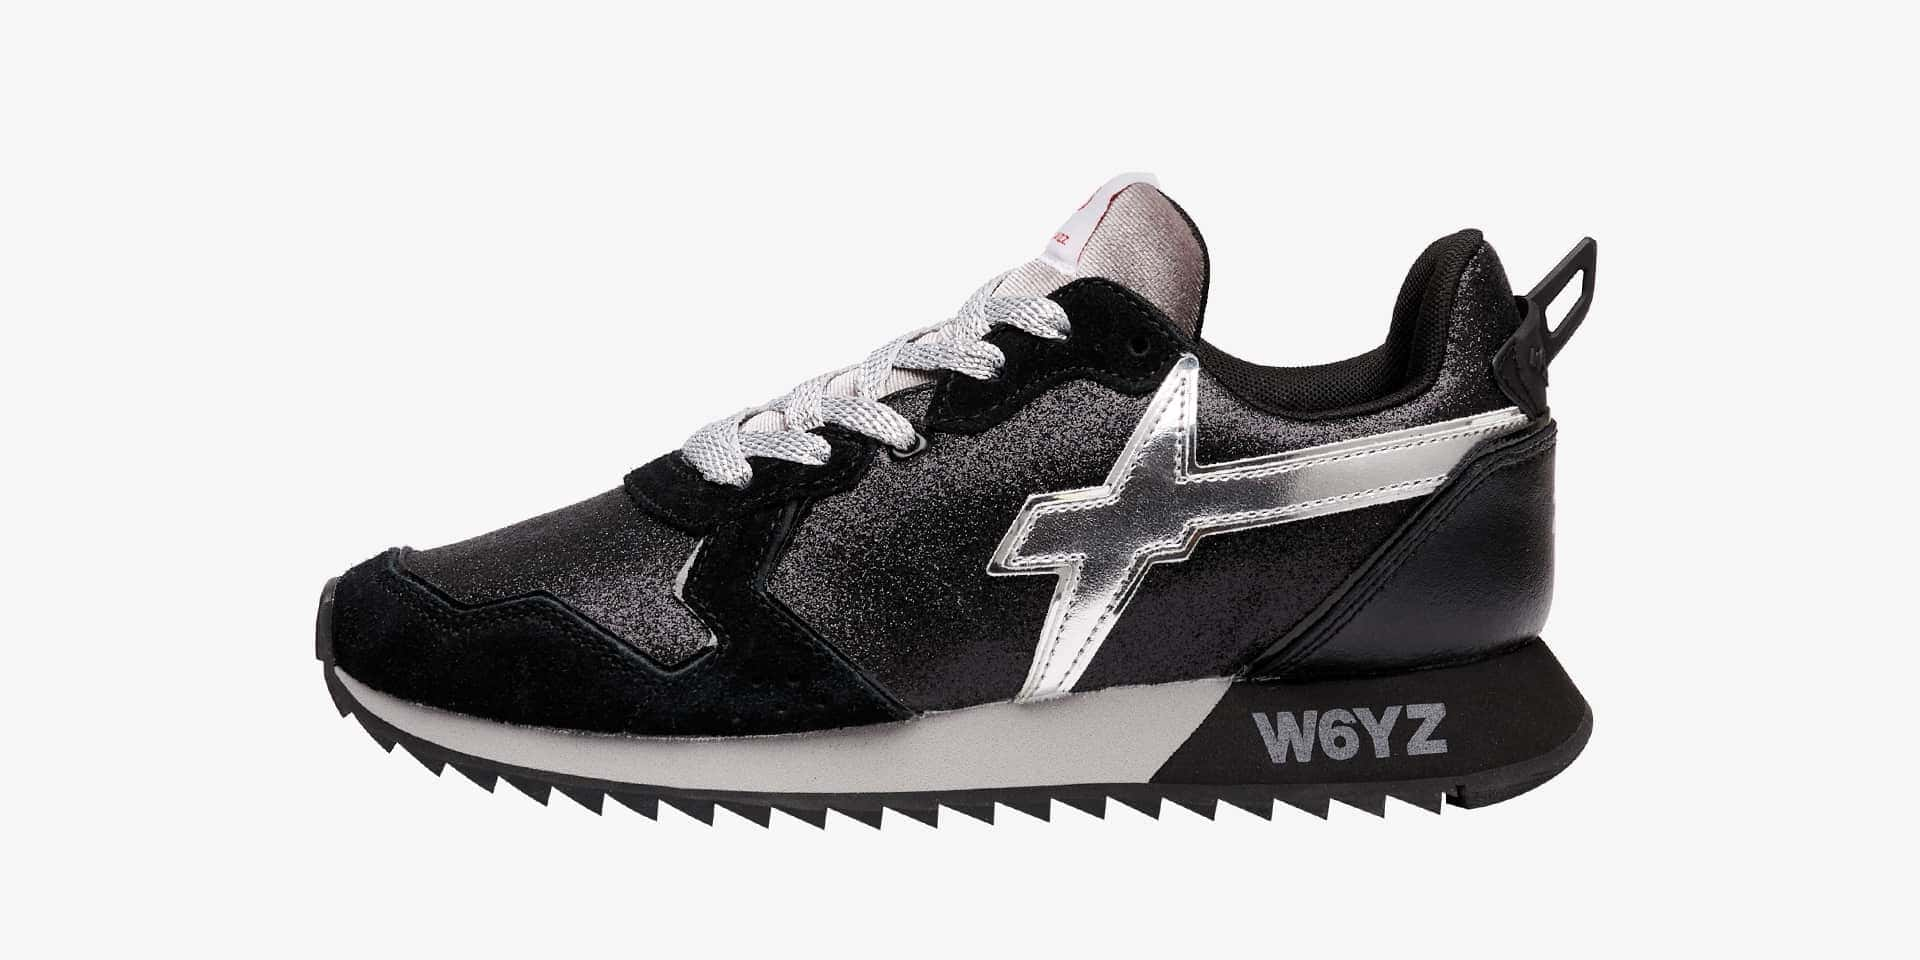 JET-W. - Suede and glitter sneakers - Black